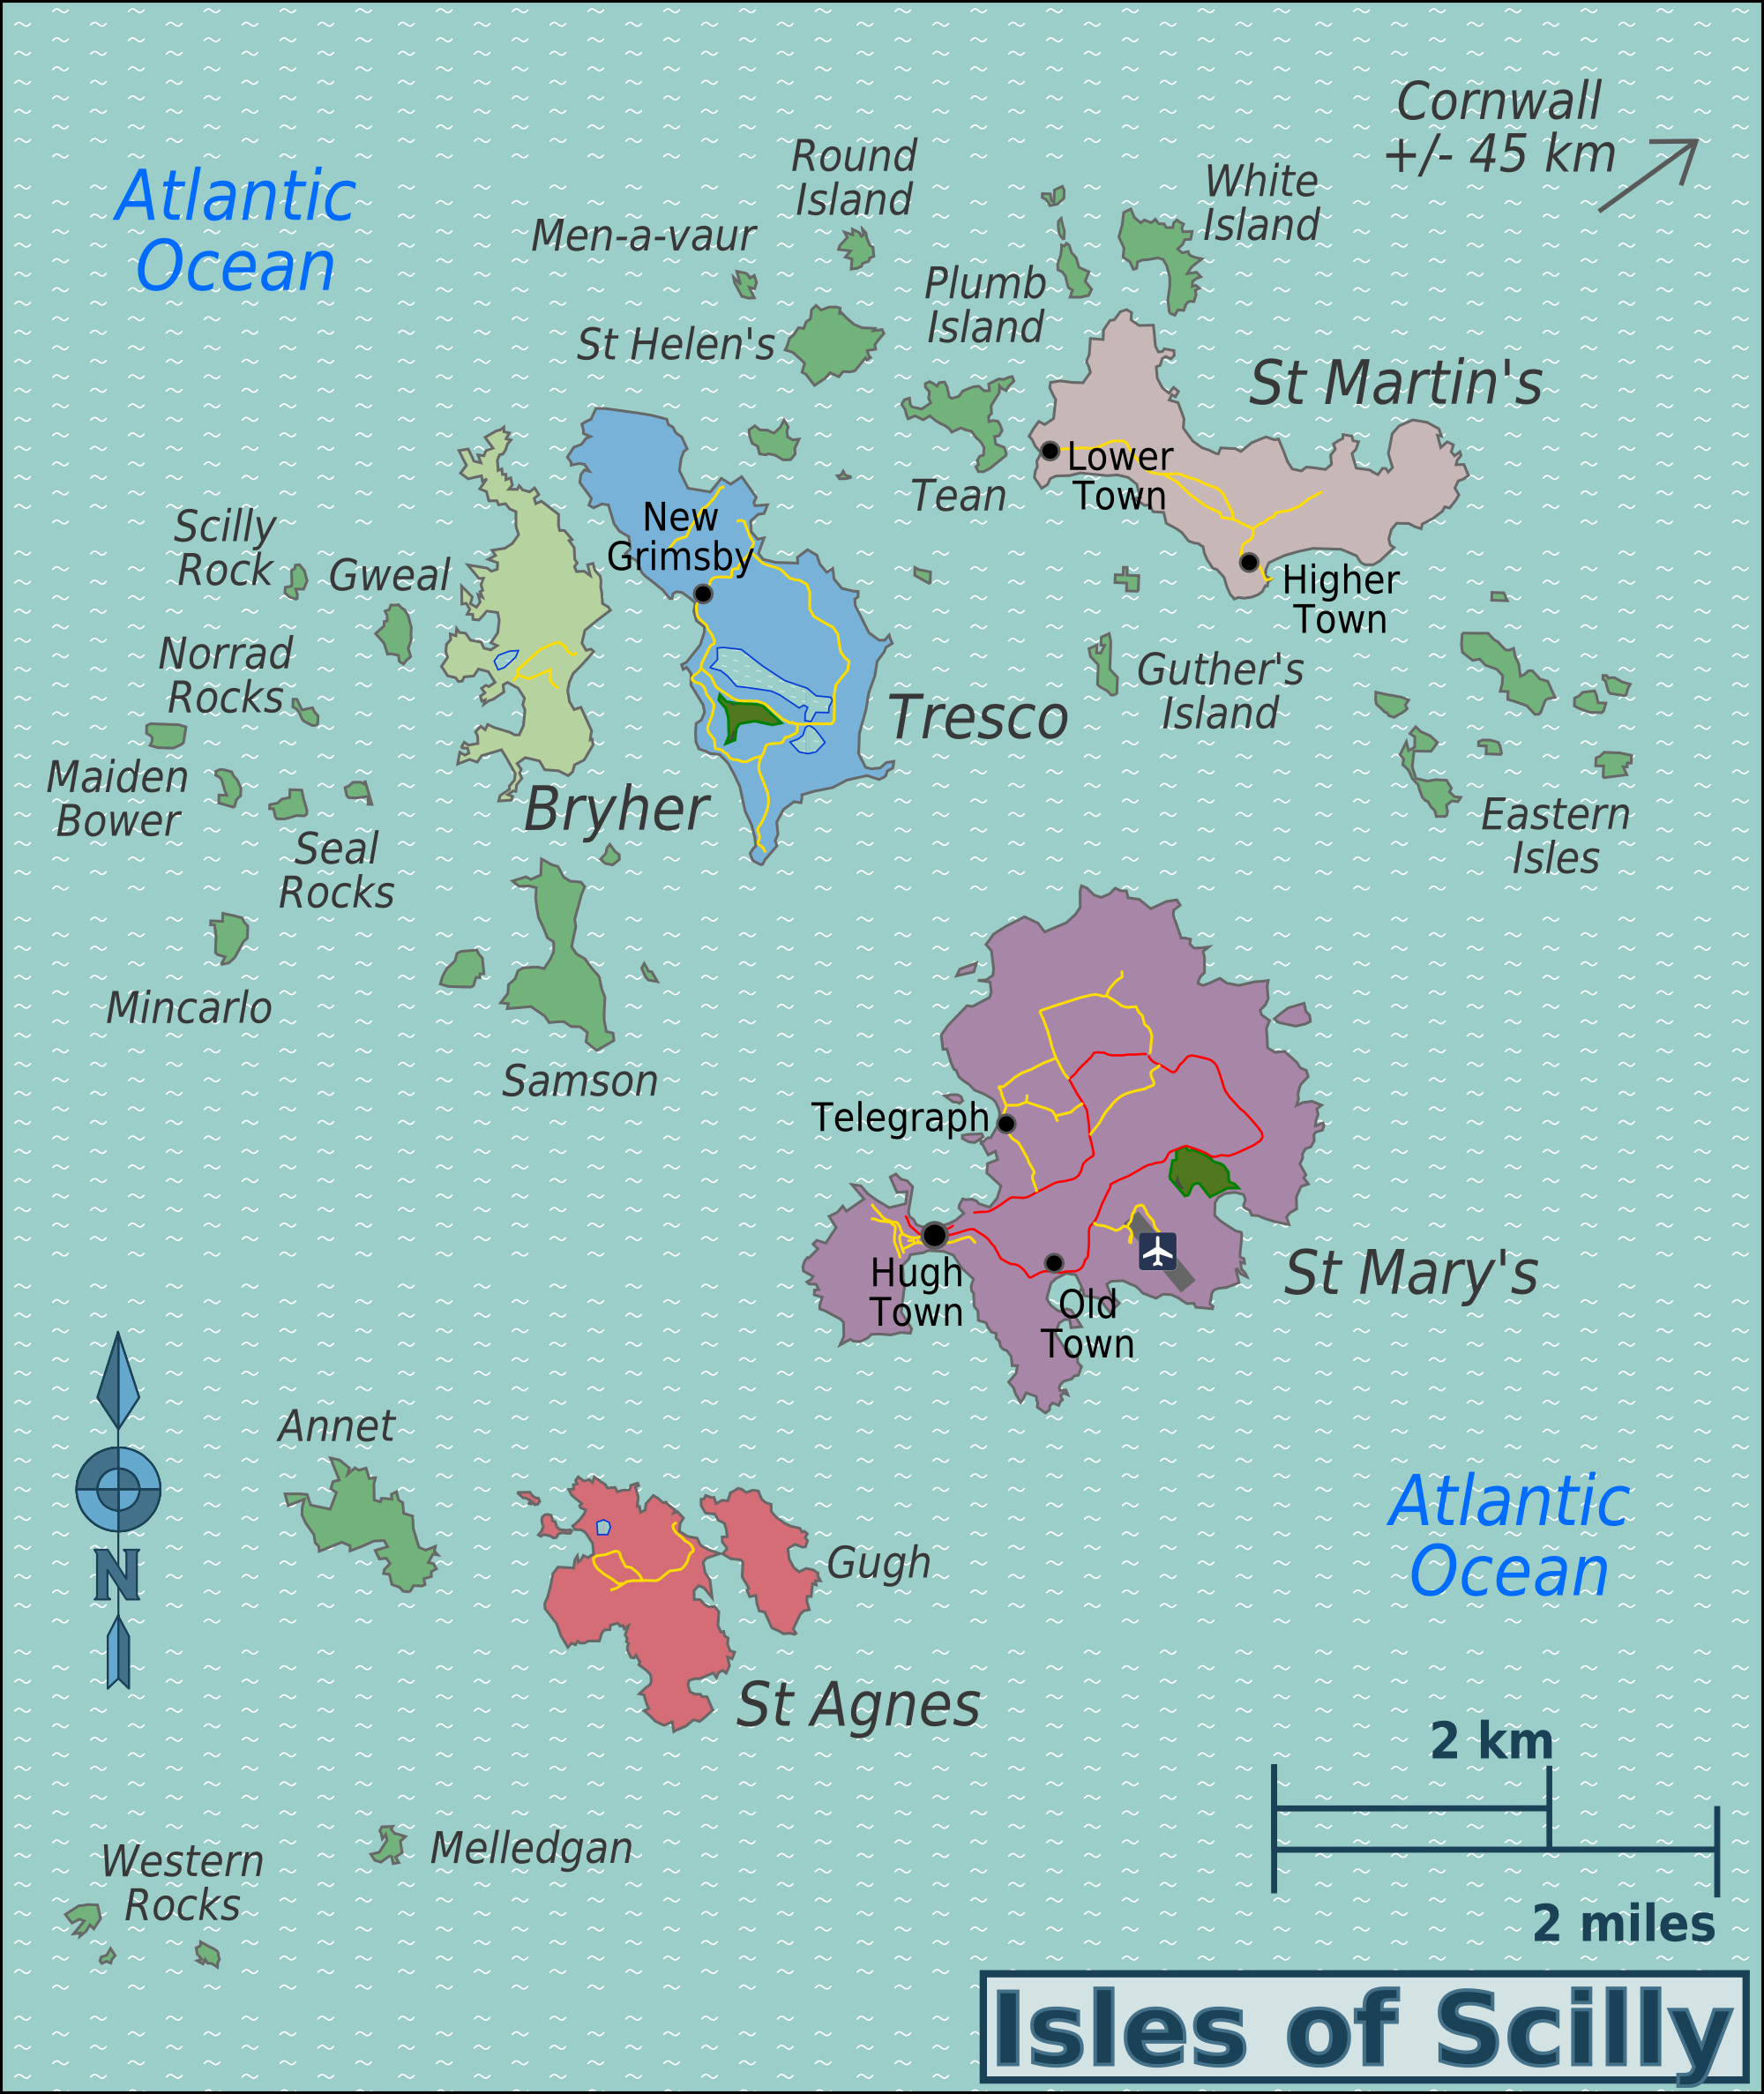 Isles Of Scilly Map File:Isles of Scilly map.png   Wikimedia Commons Isles Of Scilly Map